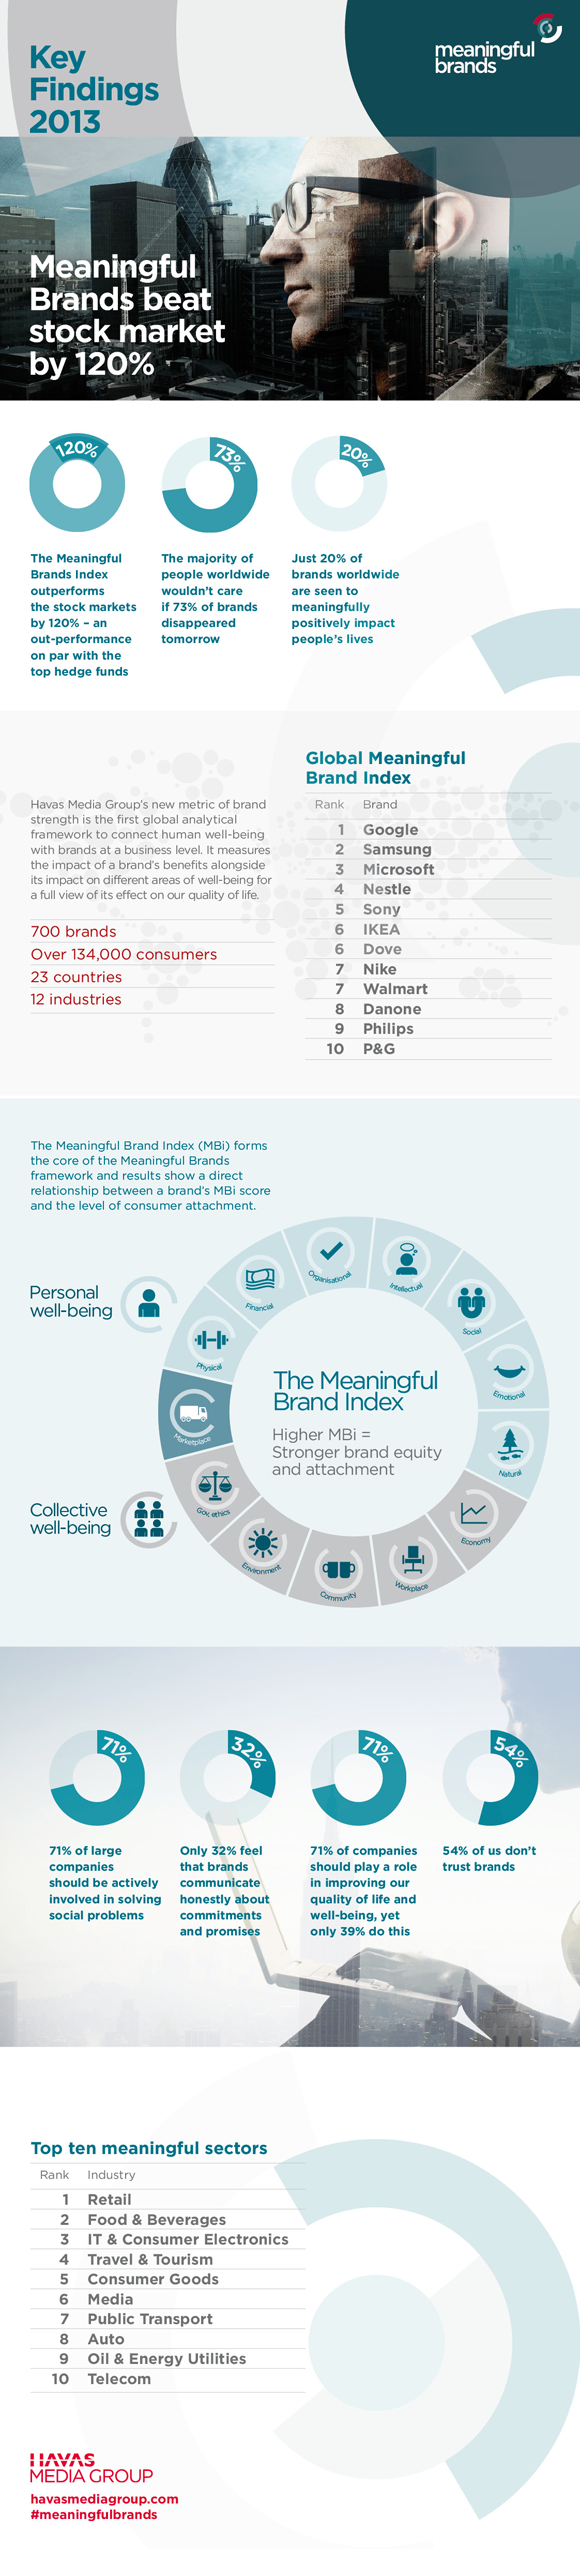 Havas Media Group 2013 Meaningful Brands study